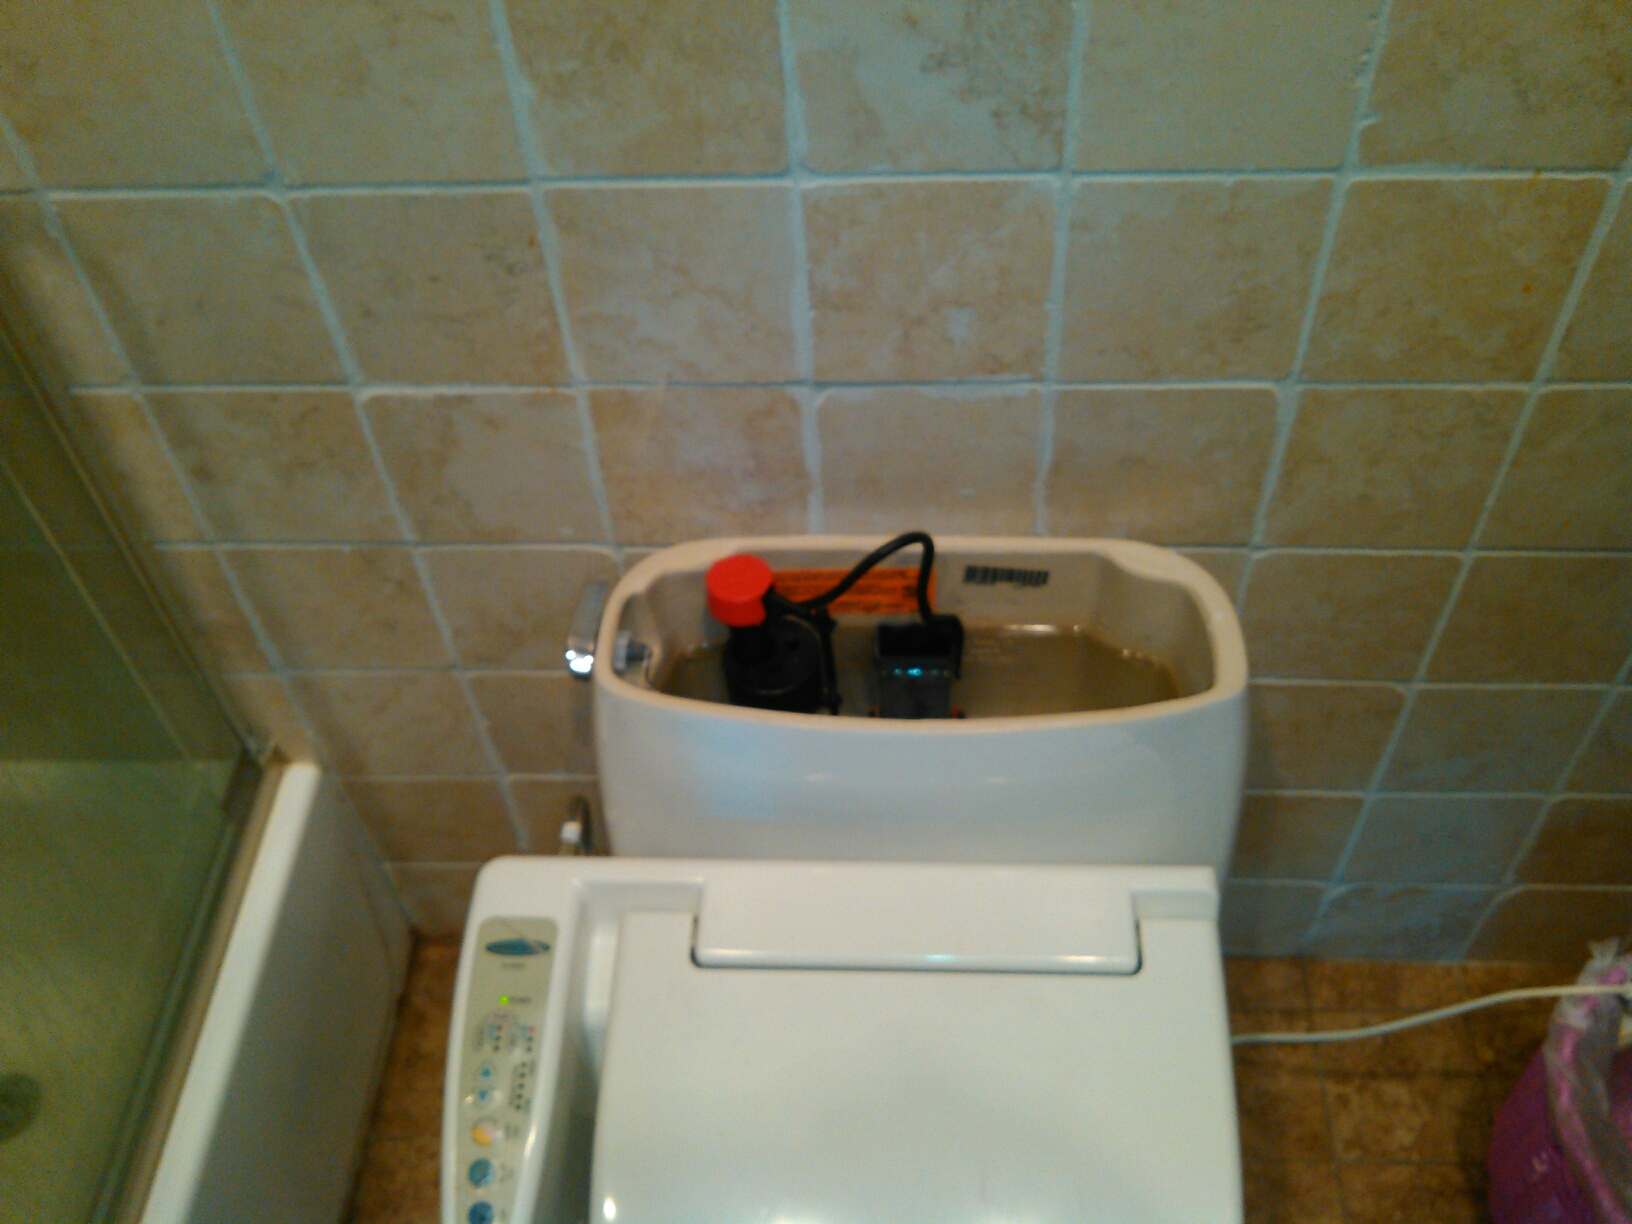 La Canada Flintridge, CA - Removed and replaced fill valve for the toilet tank. also replaced the water supply line.